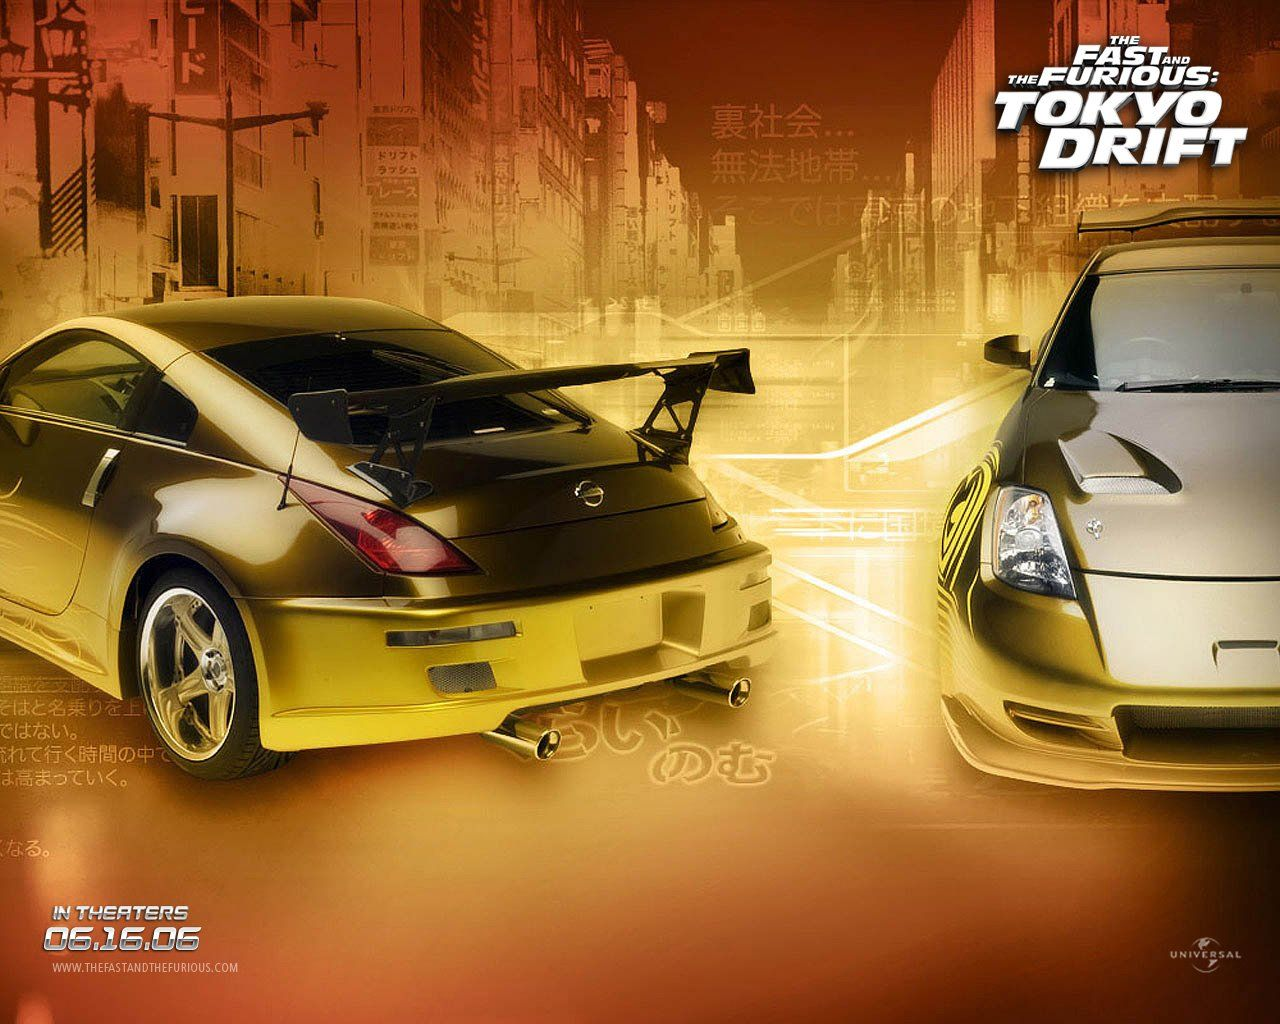 Fast and the Furious: Tokyo Drift, The (2006) wallpaper | Fast and